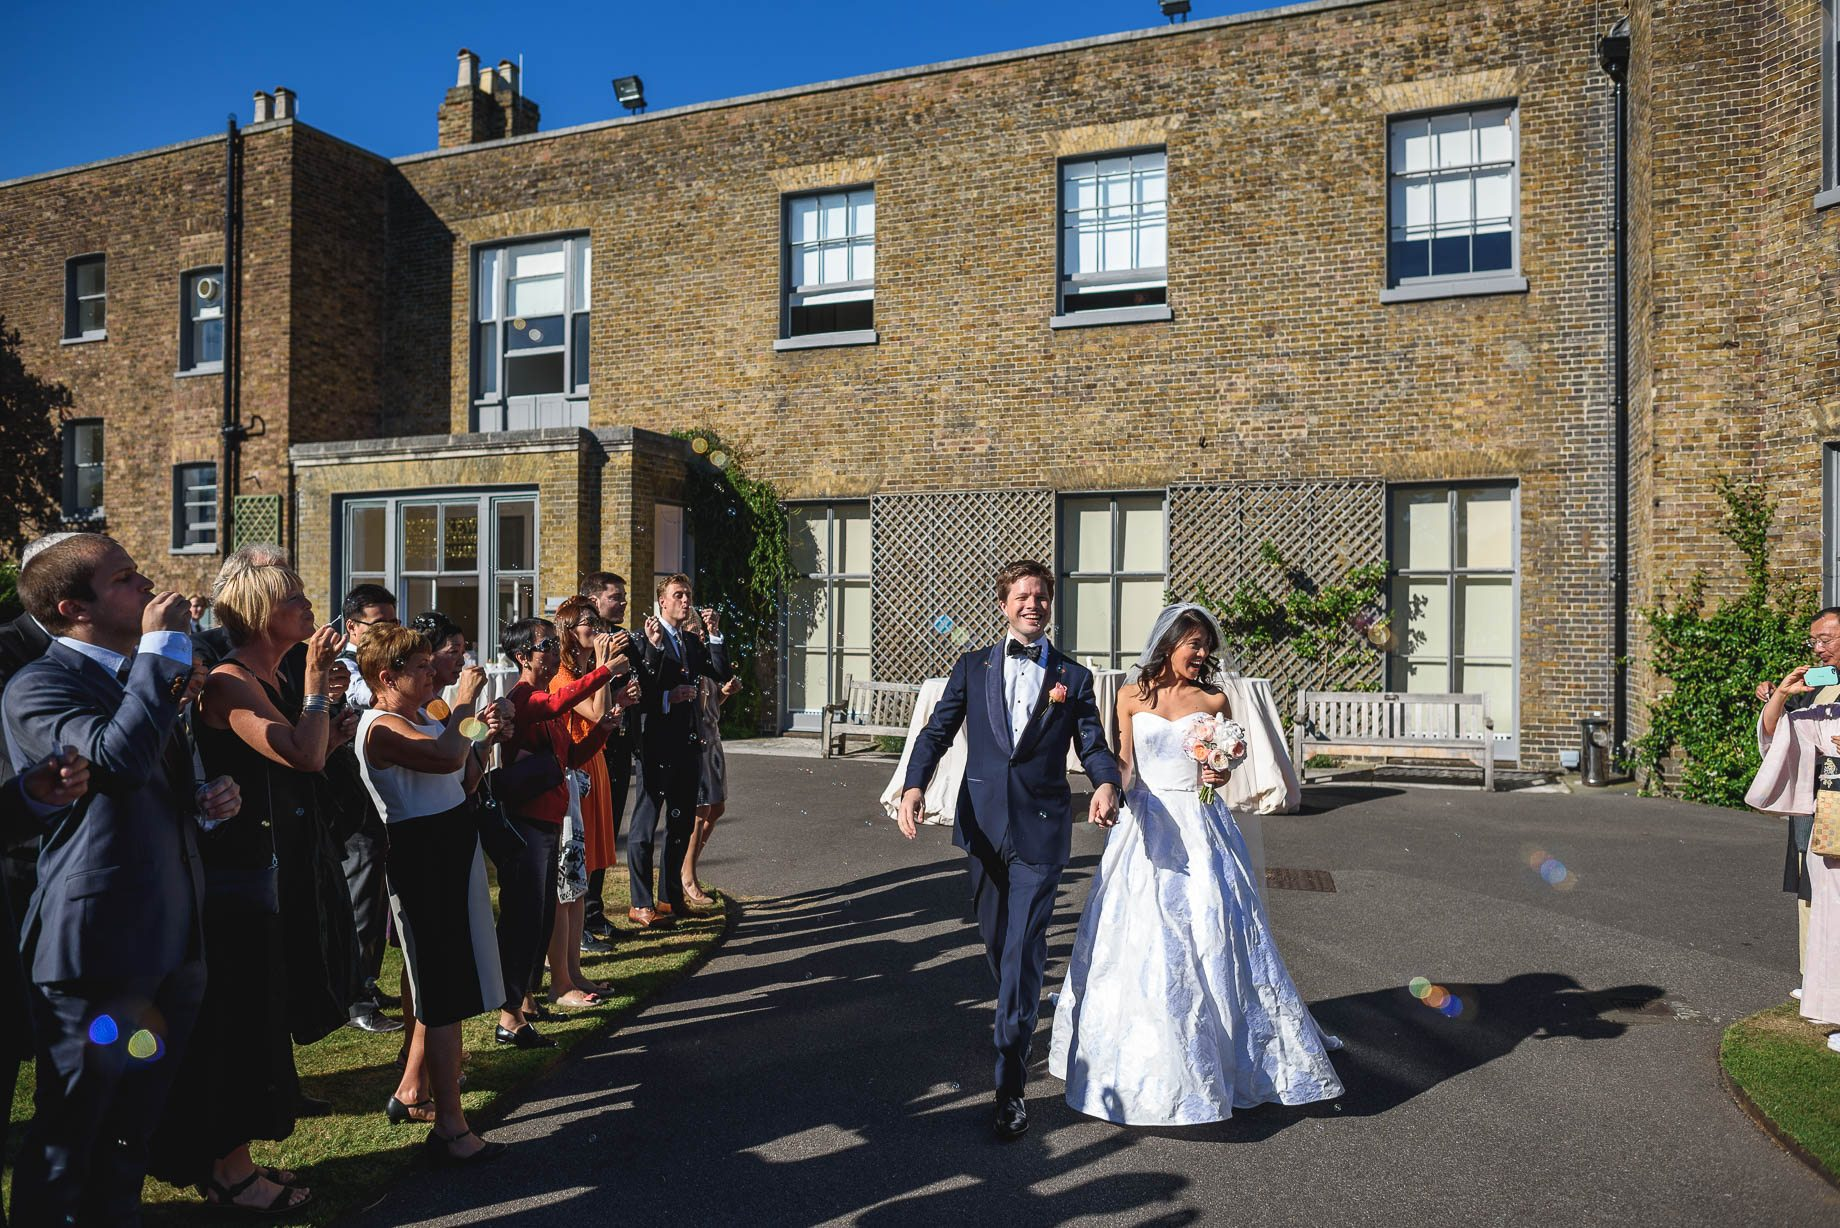 Kew Gardens wedding photography - Guy Collier Photography - Gloria and Frederik (58 of 173)